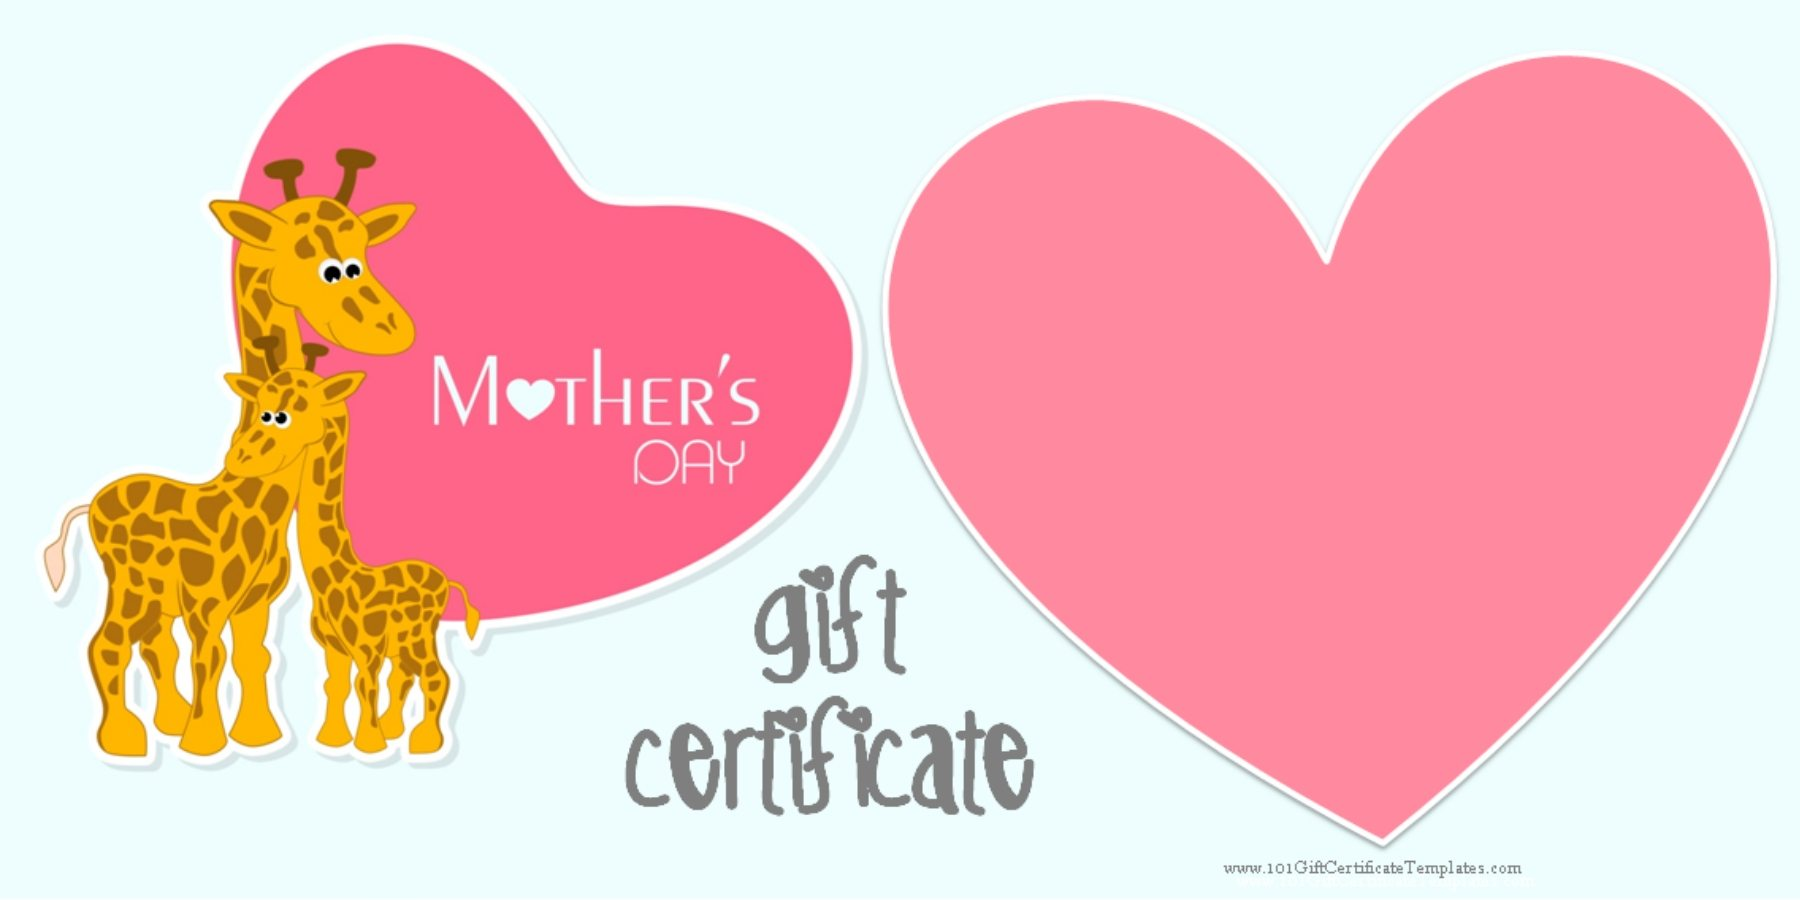 mothers-day-gift-certificate-template-hearts